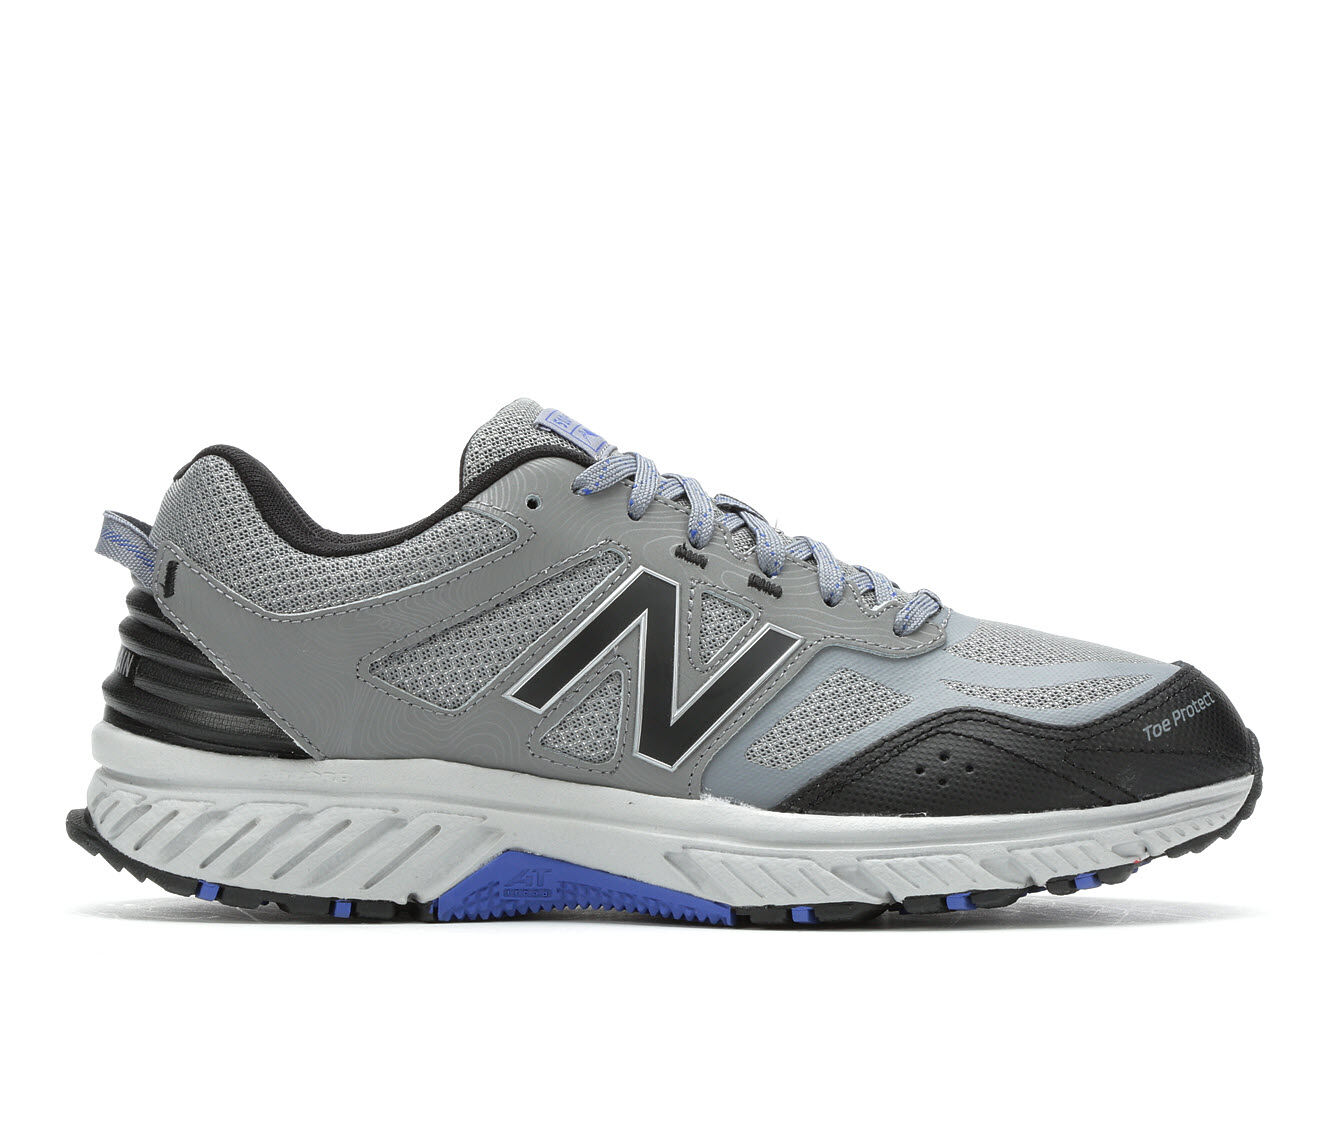 New Balance Shoes: Running & Walking Shoes